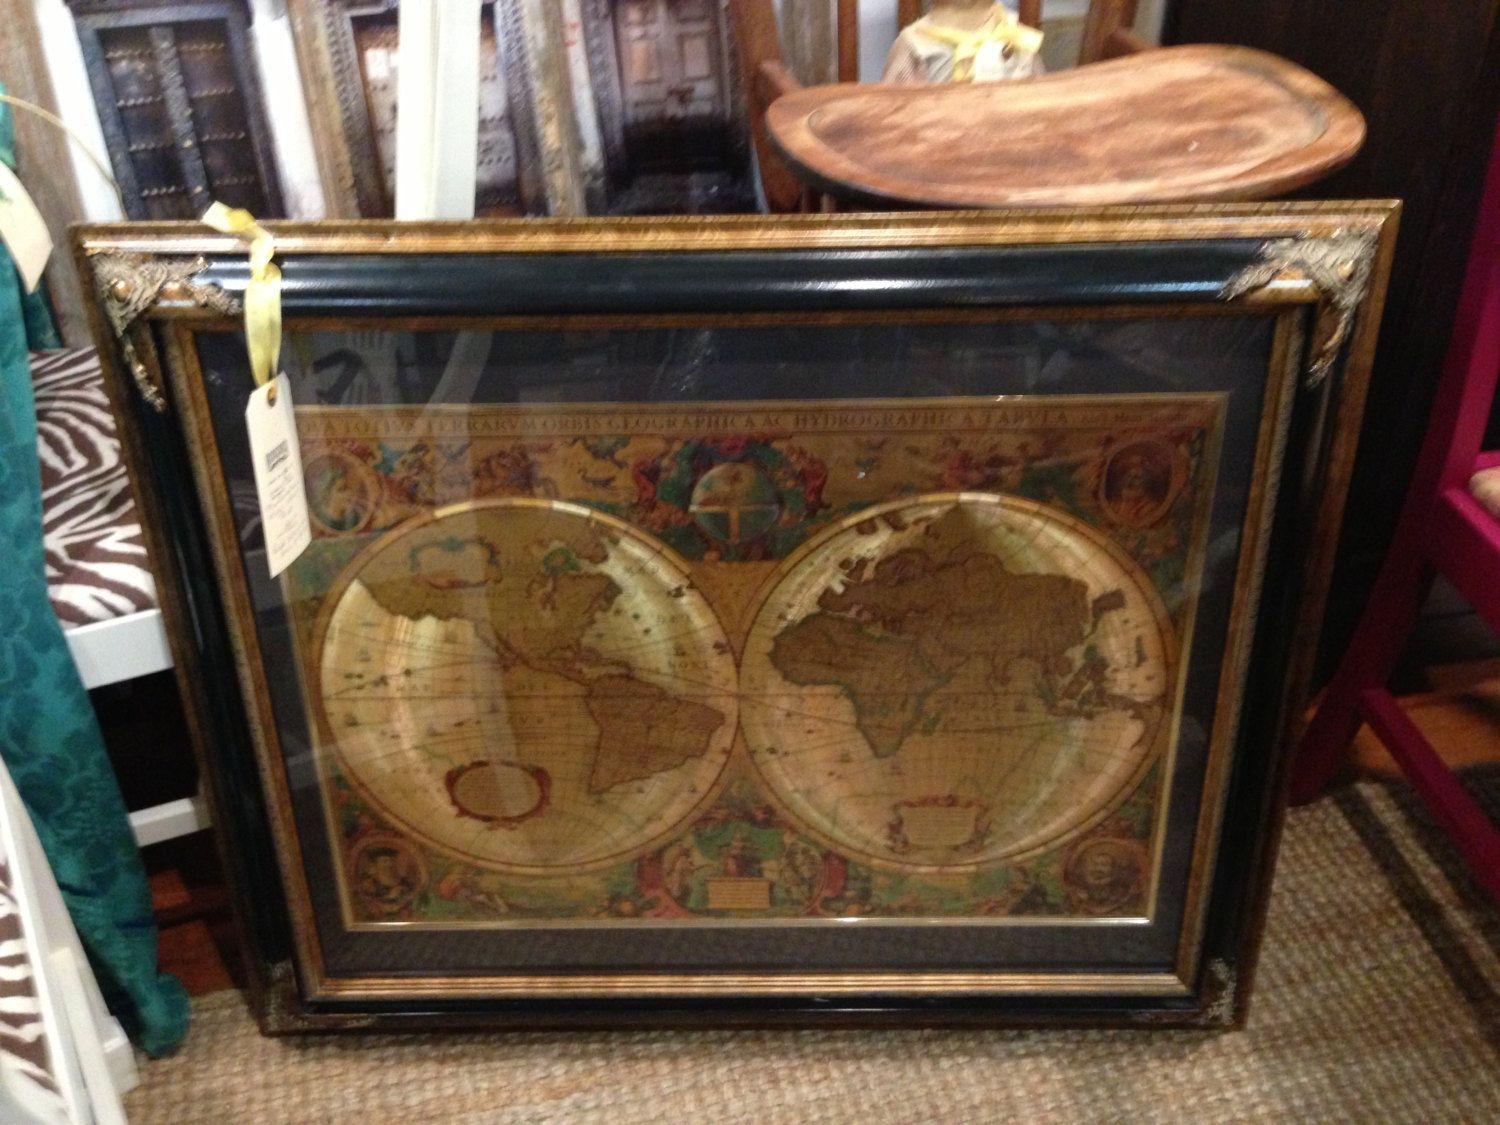 Manifestations inc old world maps antique large frame black and gold manifestations inc old world maps antique large by redeemedfinds 25000 gumiabroncs Image collections